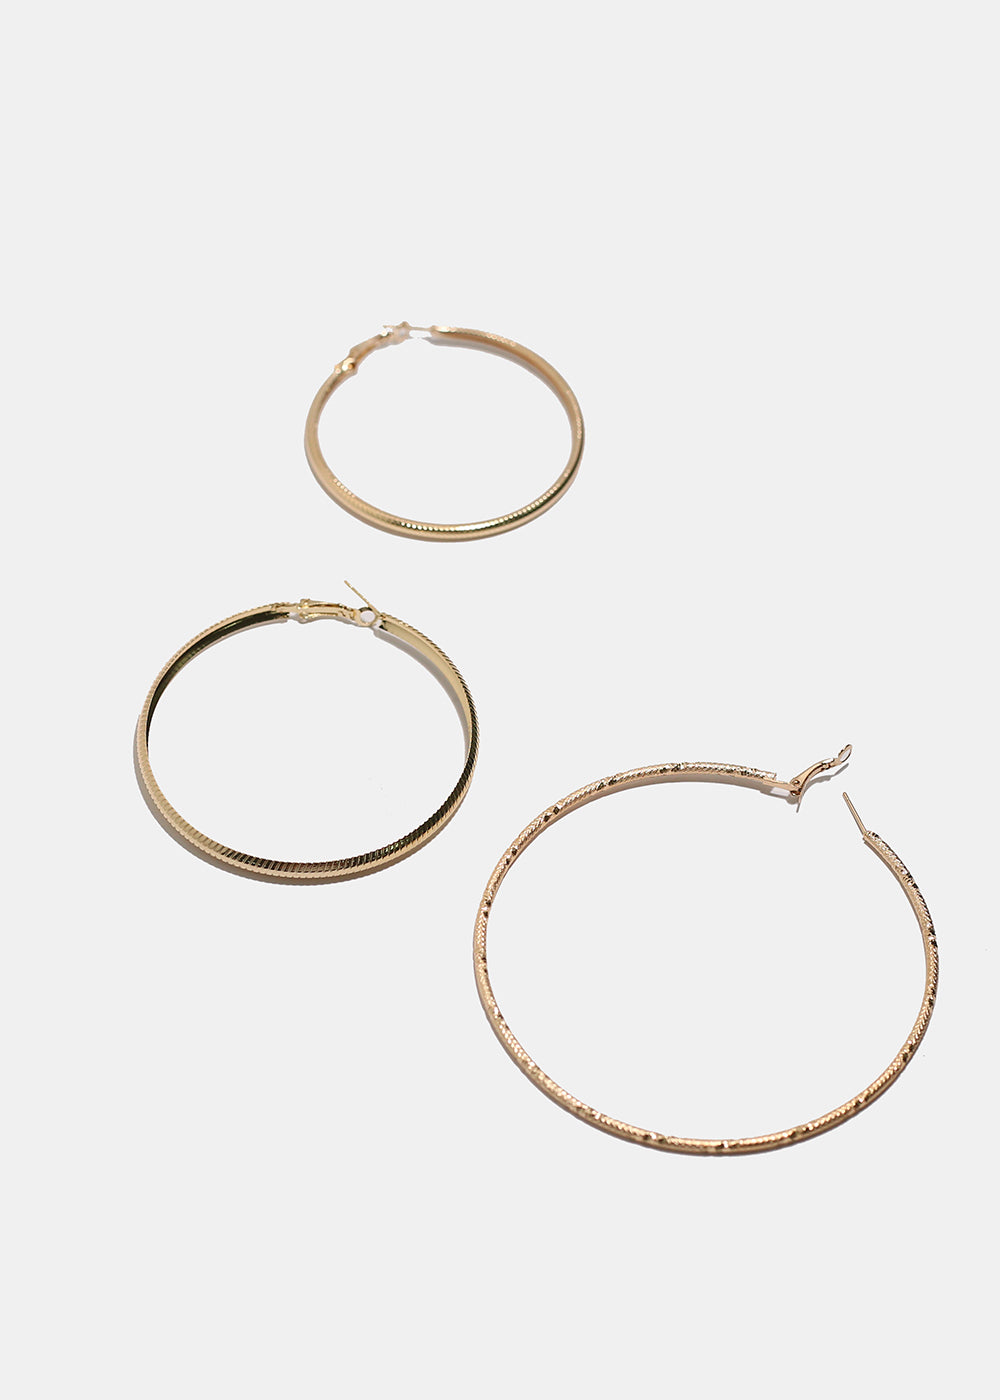 3-Pair Large Textured Hoop Earrings